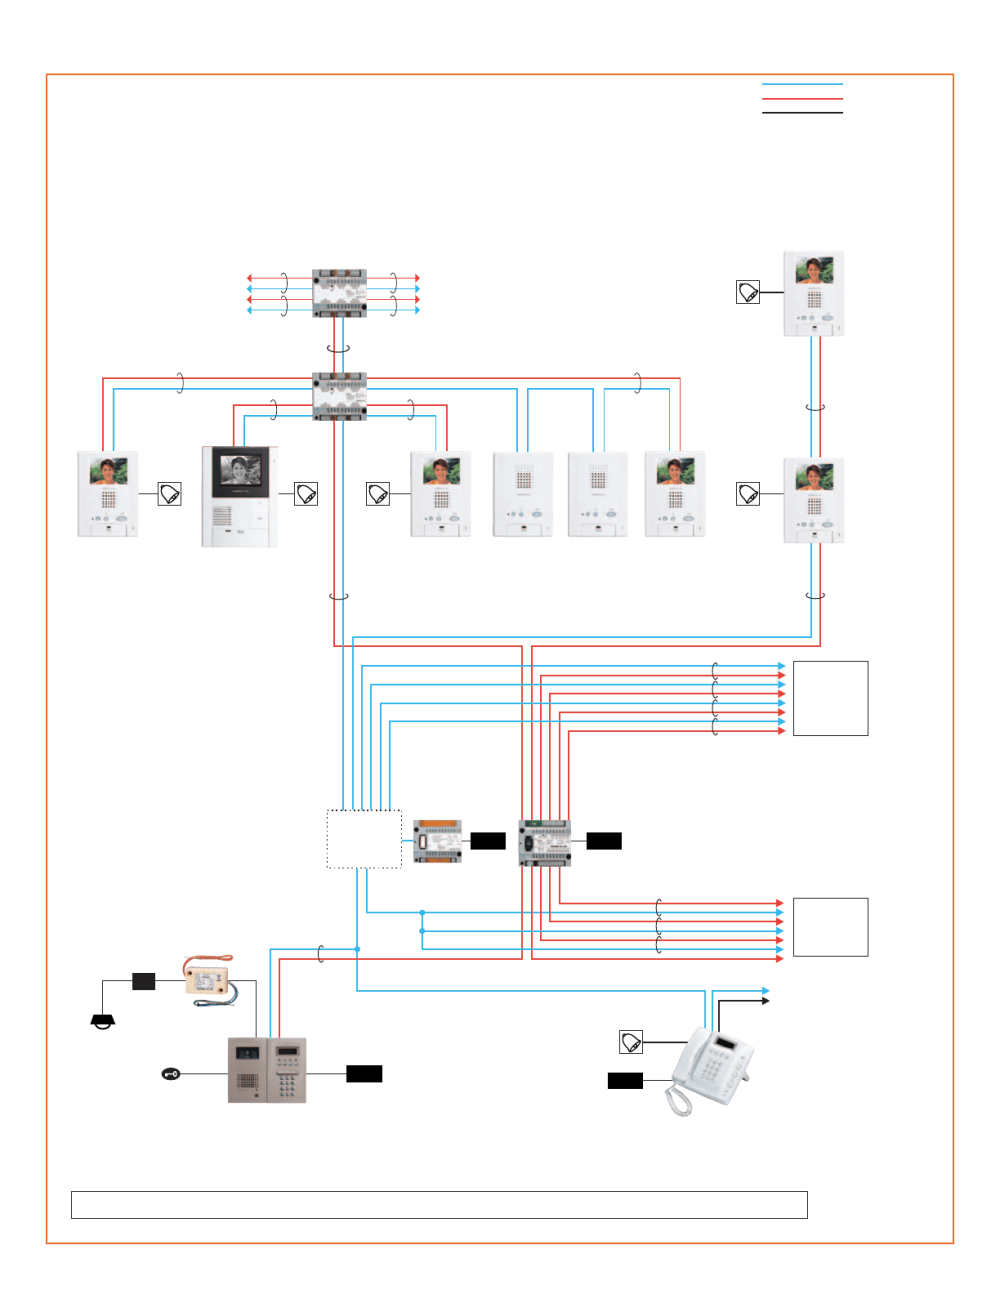 medium resolution of aiphone gh 1kd wiring diagram 29 wiring diagram images 1987 camaro fuse box